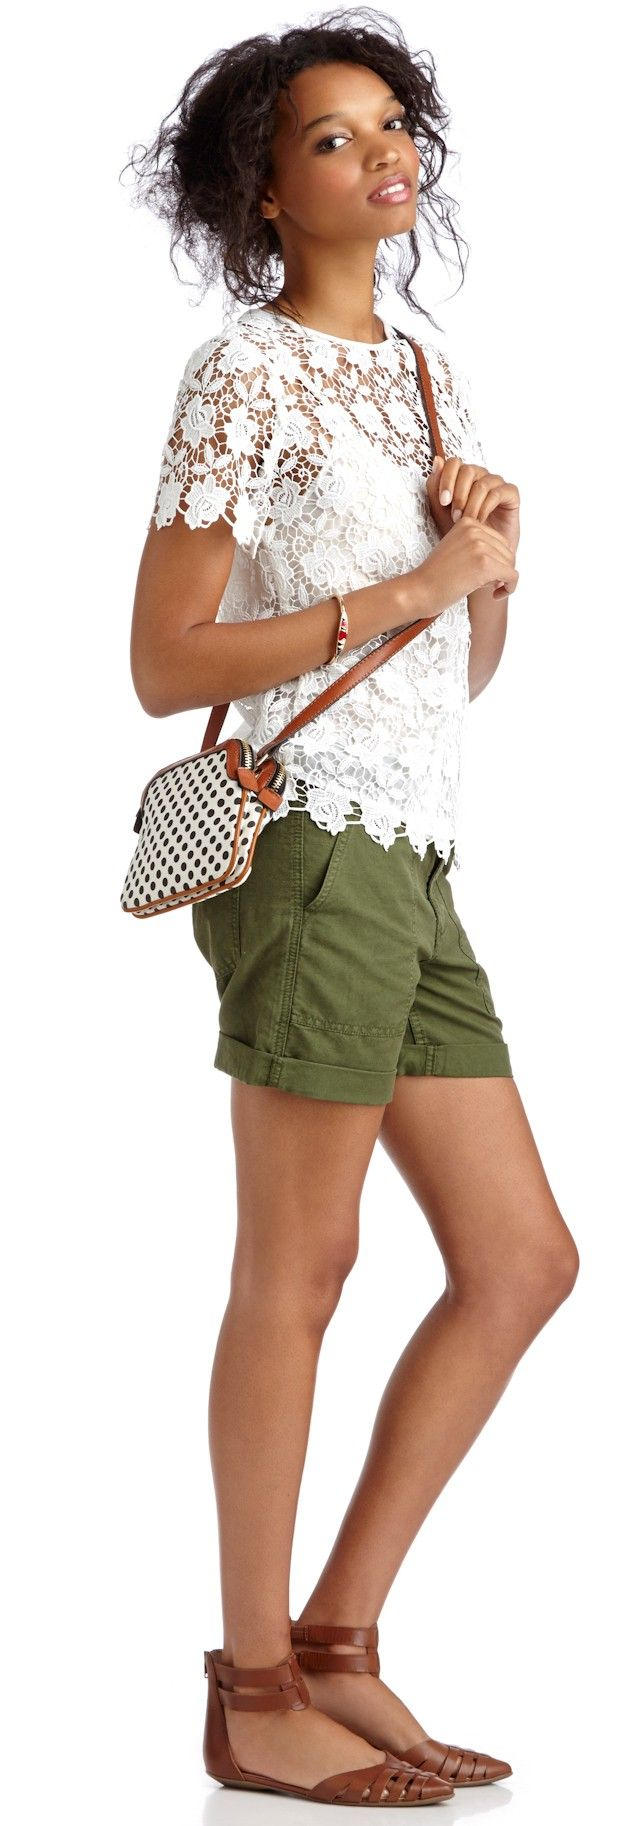 """Lace, polkadots and summer sandals!.""""..high school summers"""